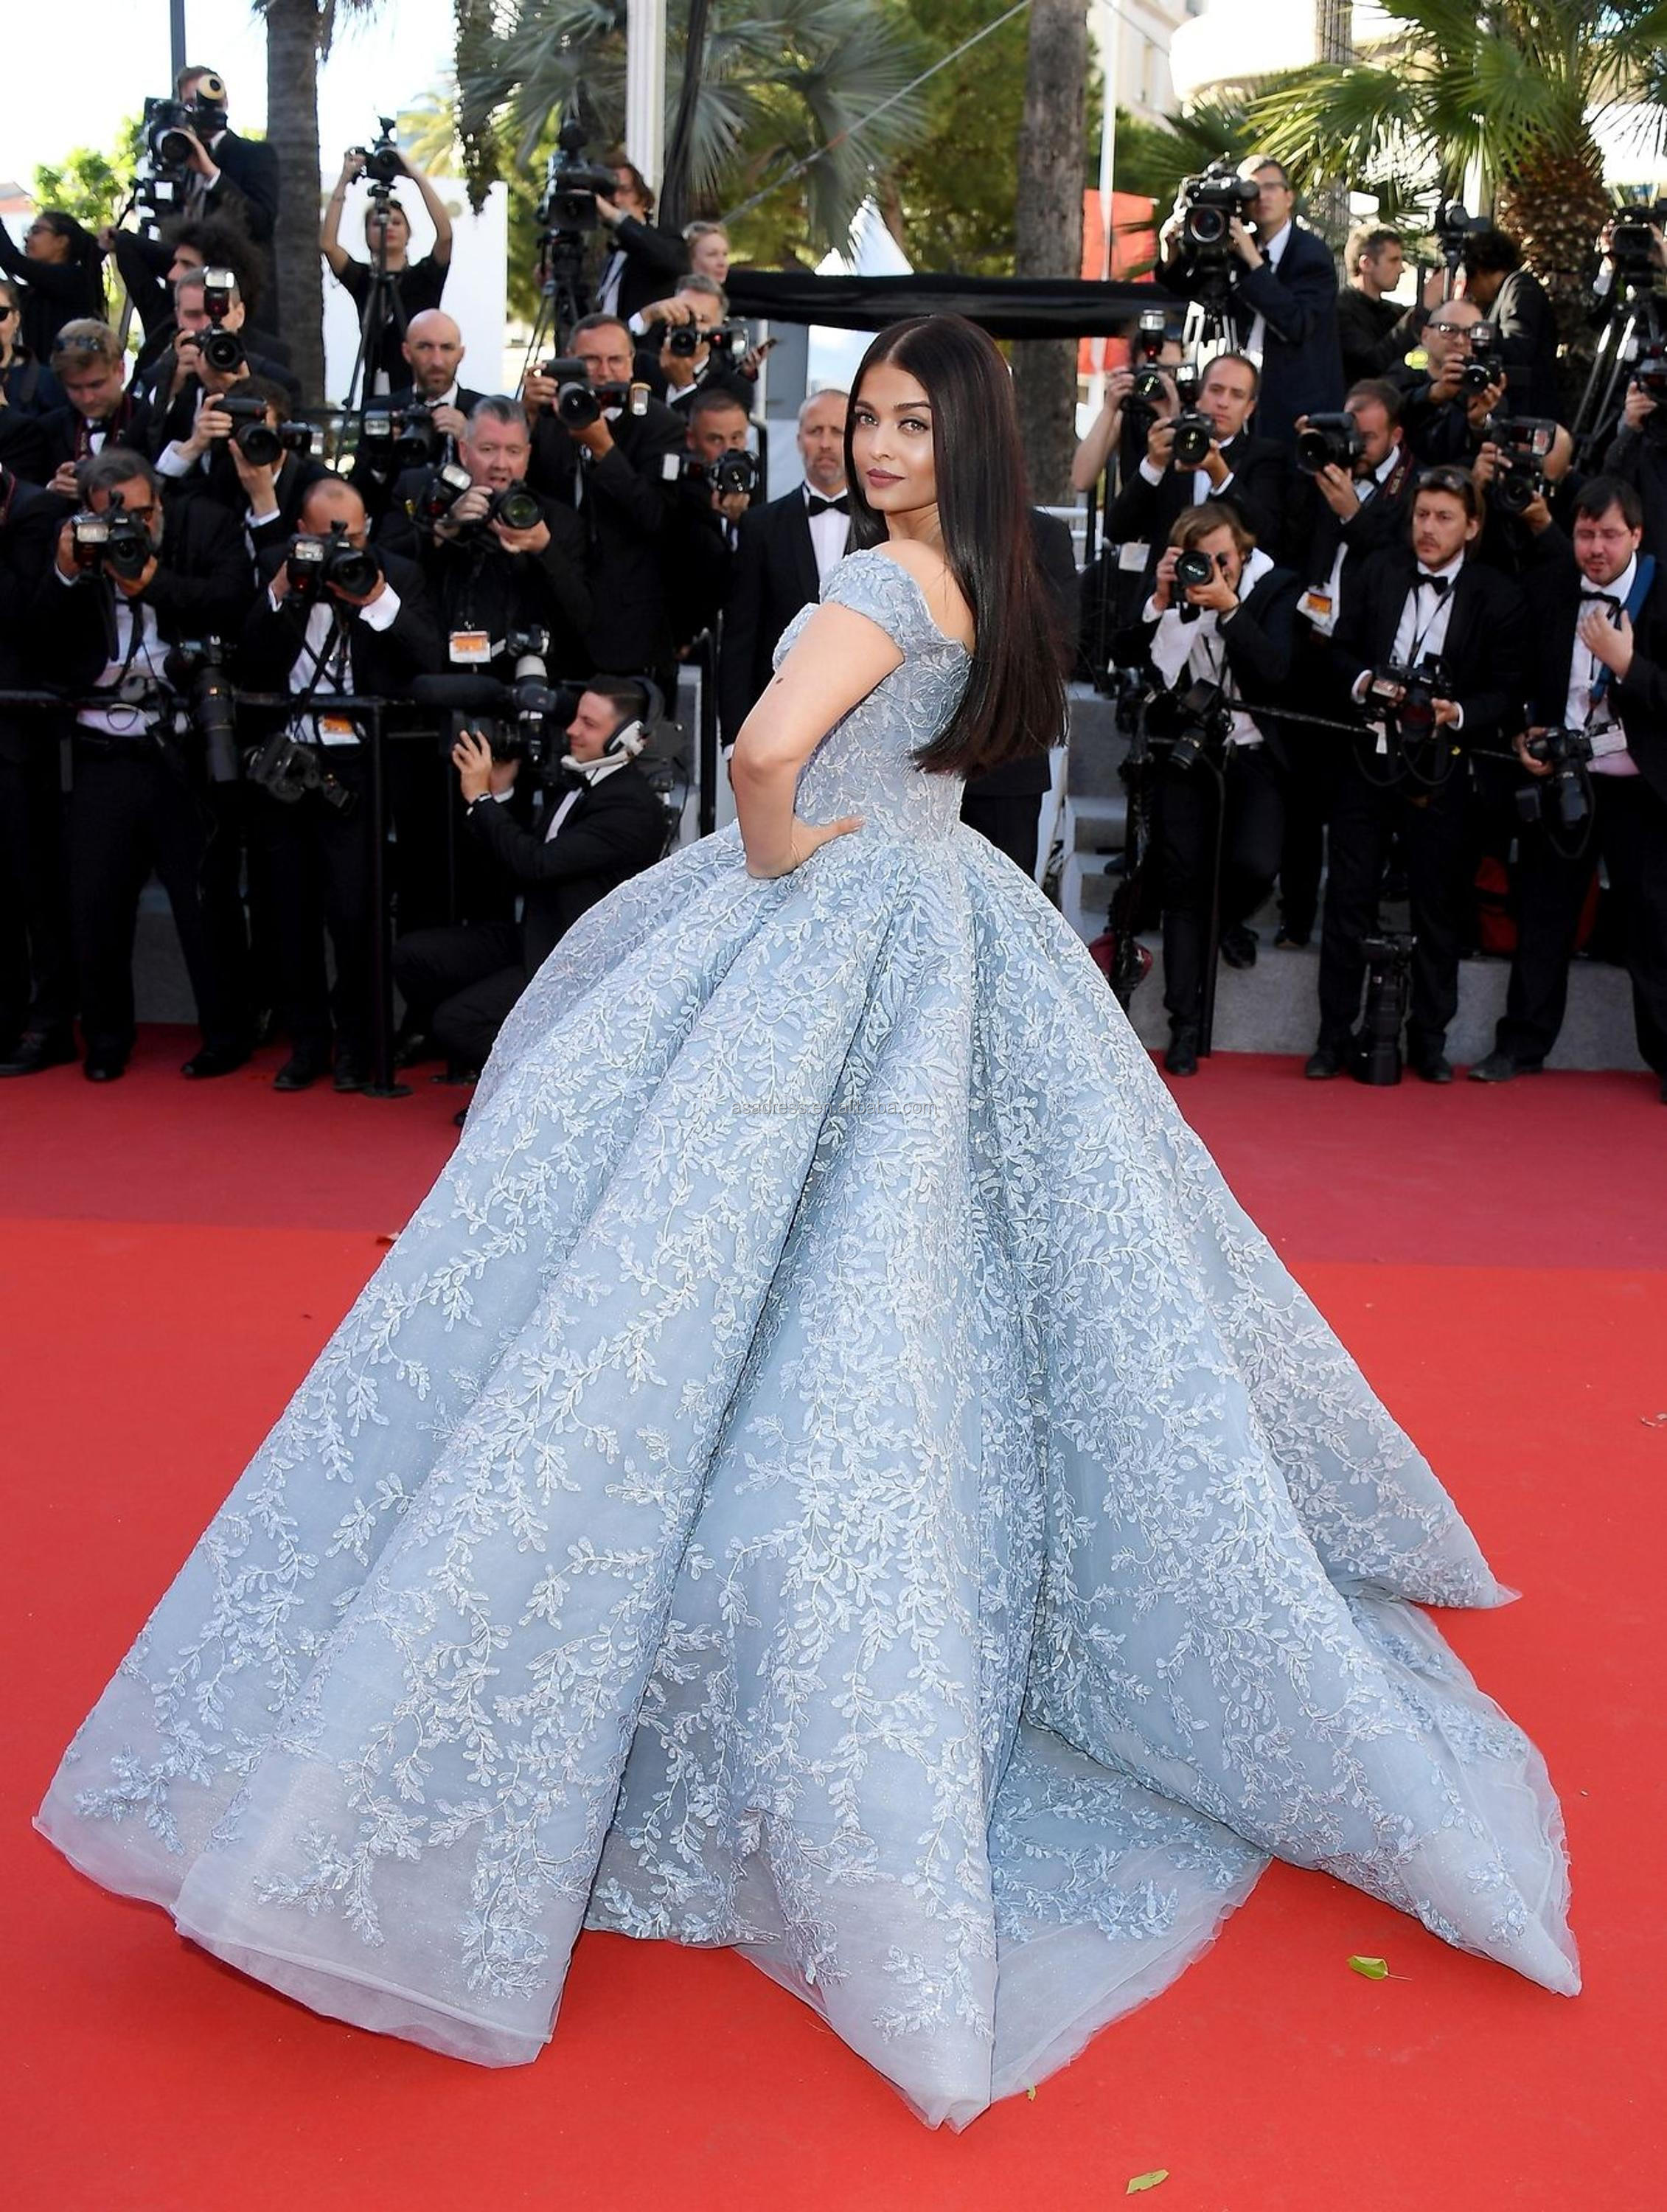 Roter Teppich Cannes Mgc001 Bollywood Superstar Aishwarya Rai Prinzessin Ballkleid Cannes Film Festival Roter Teppich Celebrity Dress Buy Celebrity Dress Roter